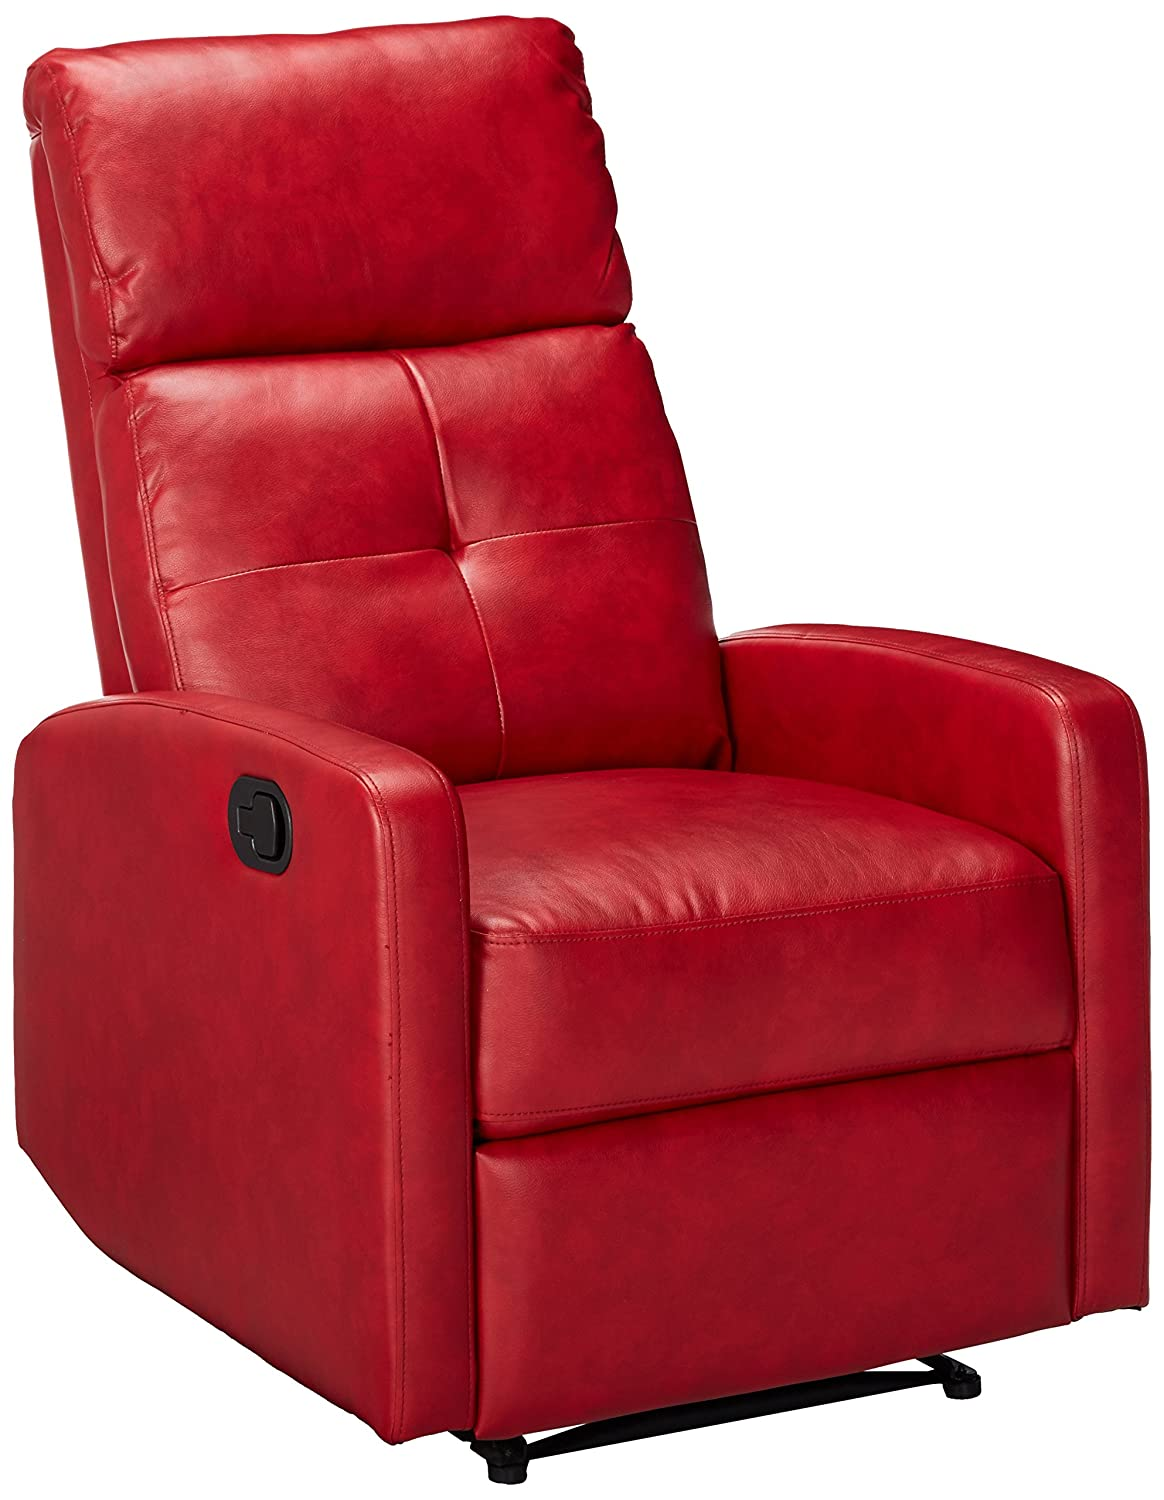 Christopher Knight Home Red Reading Chairs for Bedroom